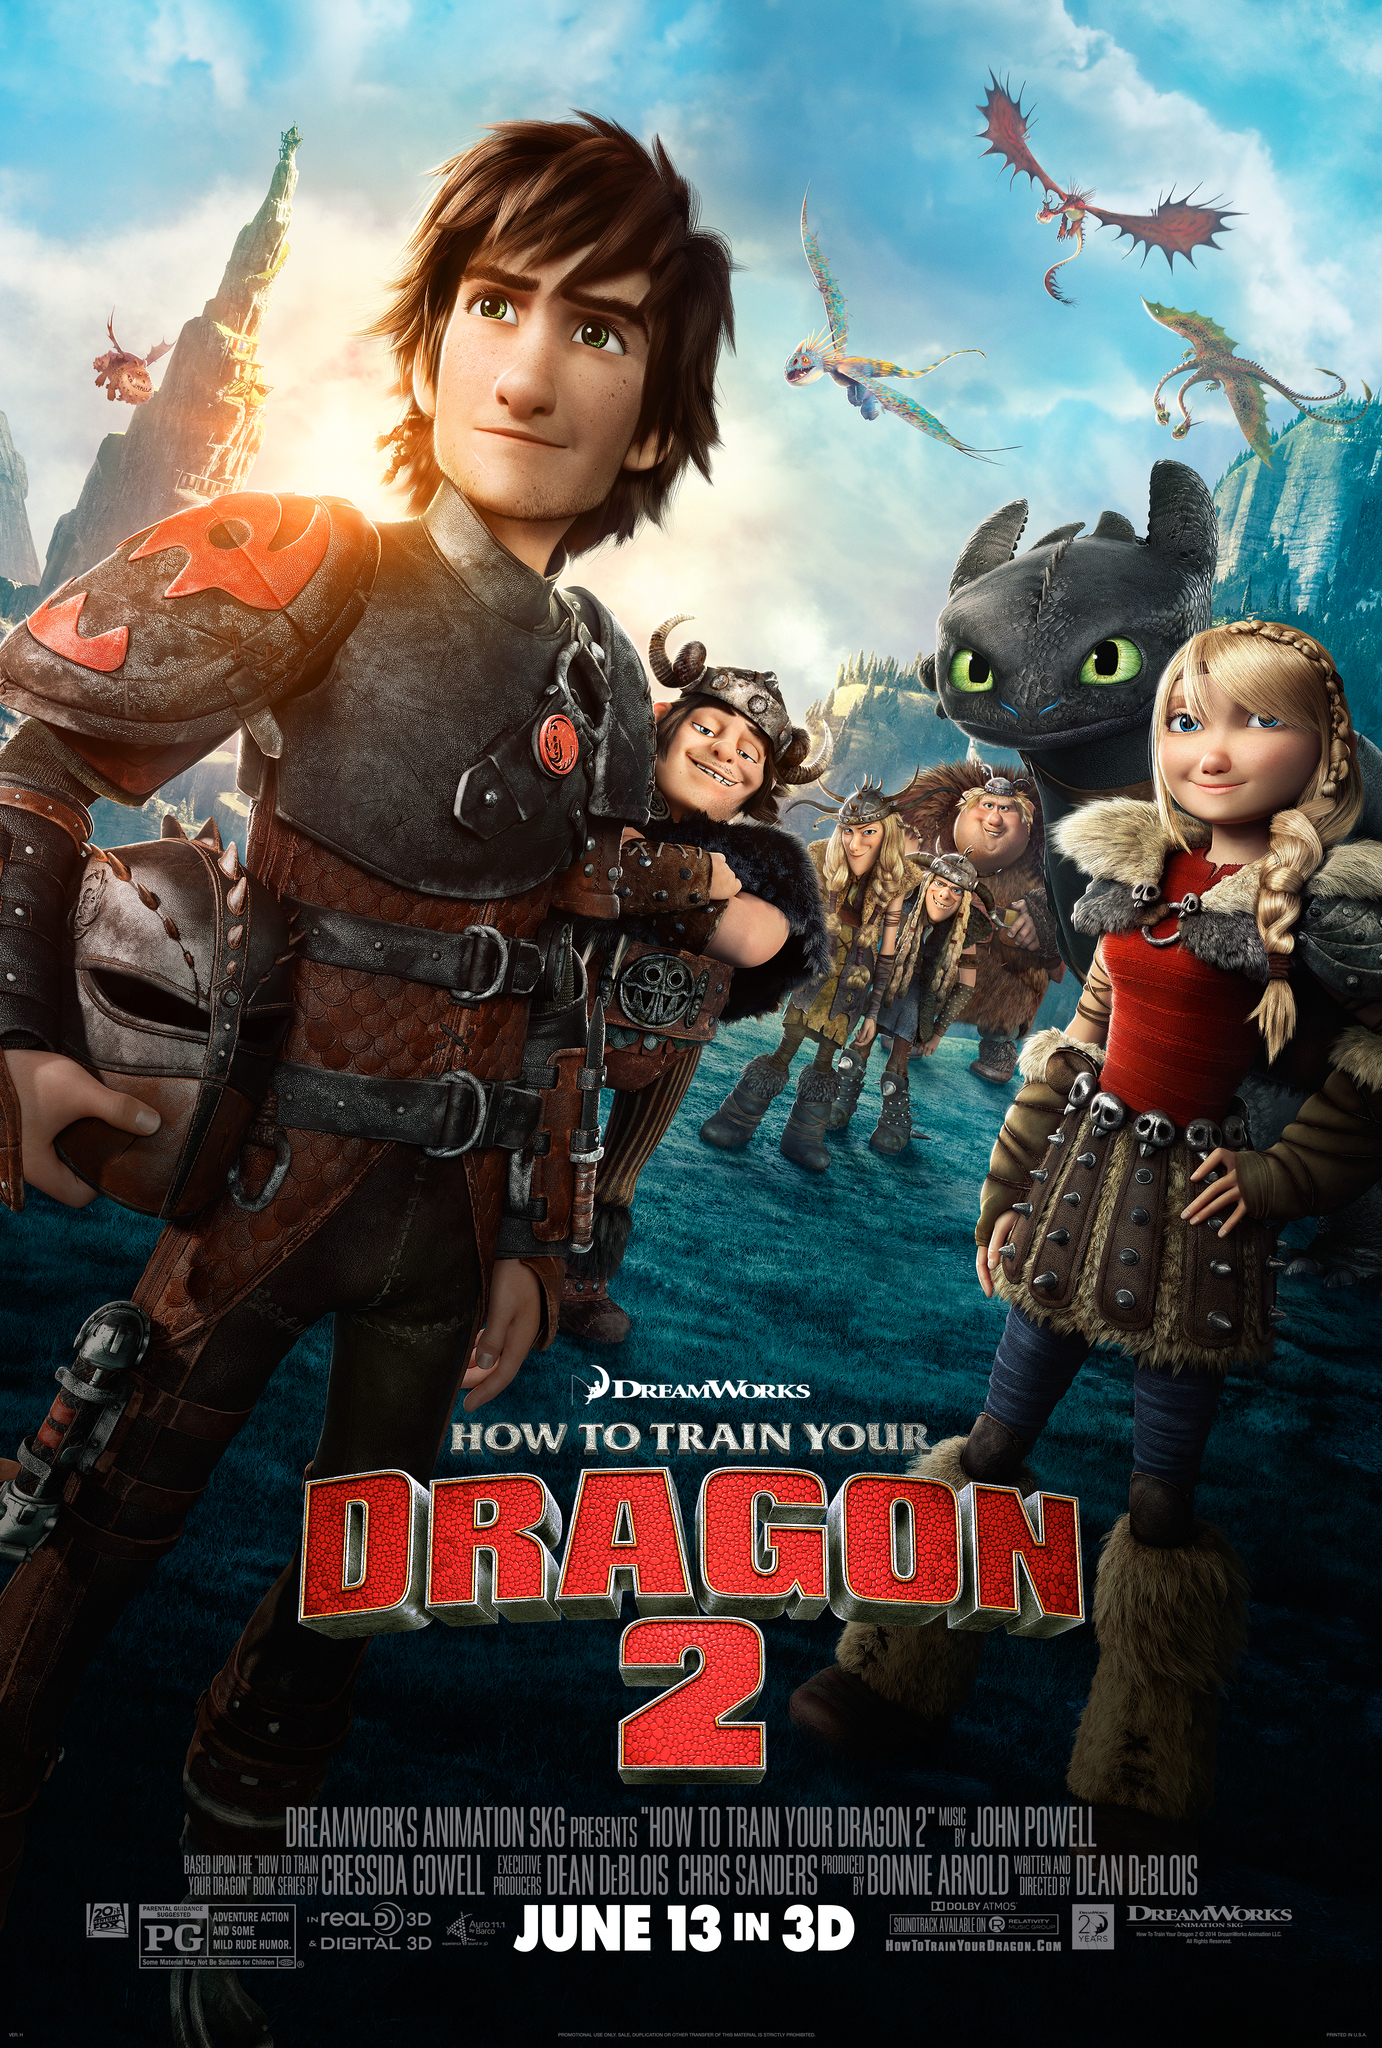 How to Train Your Dragon 2 (2014) - Directed by: Dean DeBloisStarring: Jay Baruchel, Cate Blanchett, Gerard Butler, Craig Ferguson, America Ferrera, Jonah Hill, Christopher Mintz-Plasse, T.J. Miller, Kristen Wigg, Djimon Hounsou, Kit HarringtonRated: PG for Adventure Action and Some Mild Rude HumorRunning Time: 1 h 42 mTMM Score: 4 stars out of 5STRENGTHS: Worldbuilding, Story, Consequences, Characters, Emotional Connection, MusicWEAKNESSES: Supporting Character's Subplot